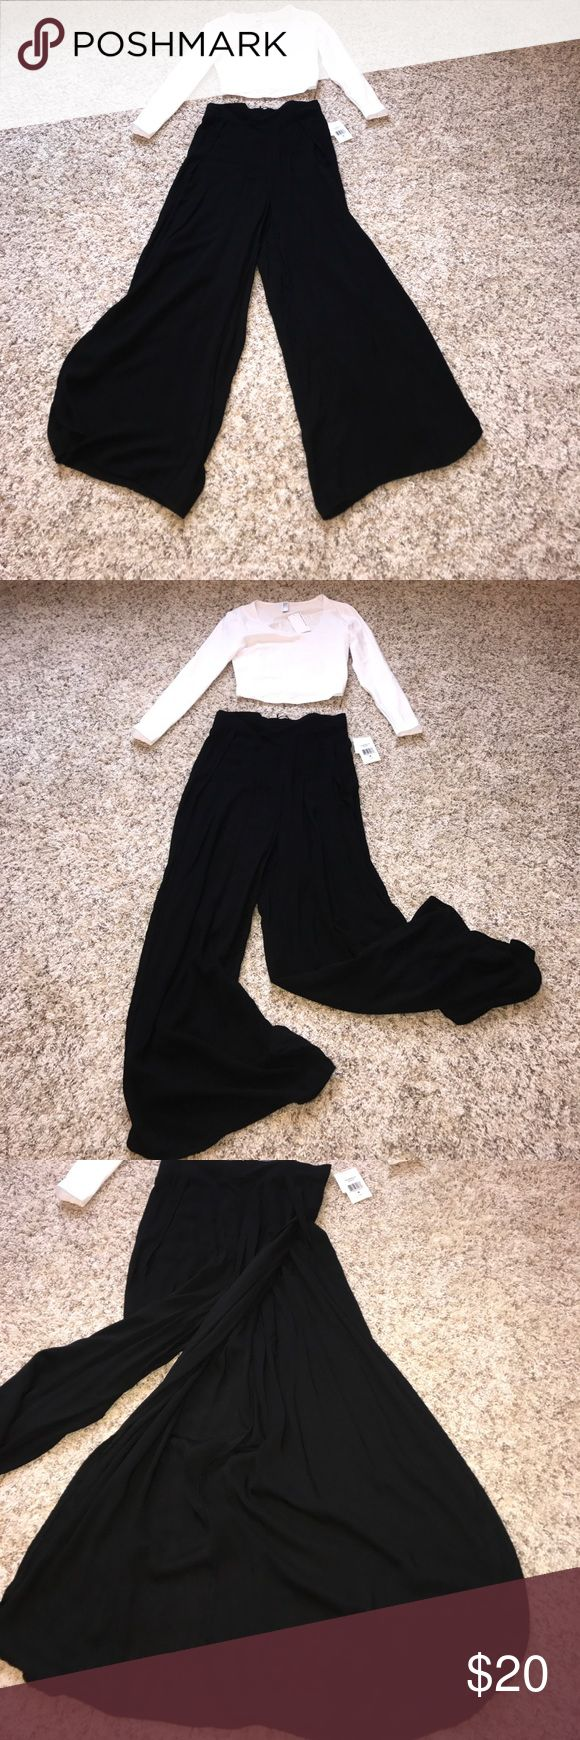 NWT Side Slit Palazzo Pants These Black side slit palazzo pants have a banded waist with rubber in the back. These pants can be dressed down and dressed up. If you're looking for a more casual look these pants pair well with a crop top, a cross body bag, and sandals or sneakers. If you want to dress it up even more, this would look nice with a sequin top and a pair of dressy heels. living doll Pants Wide Leg